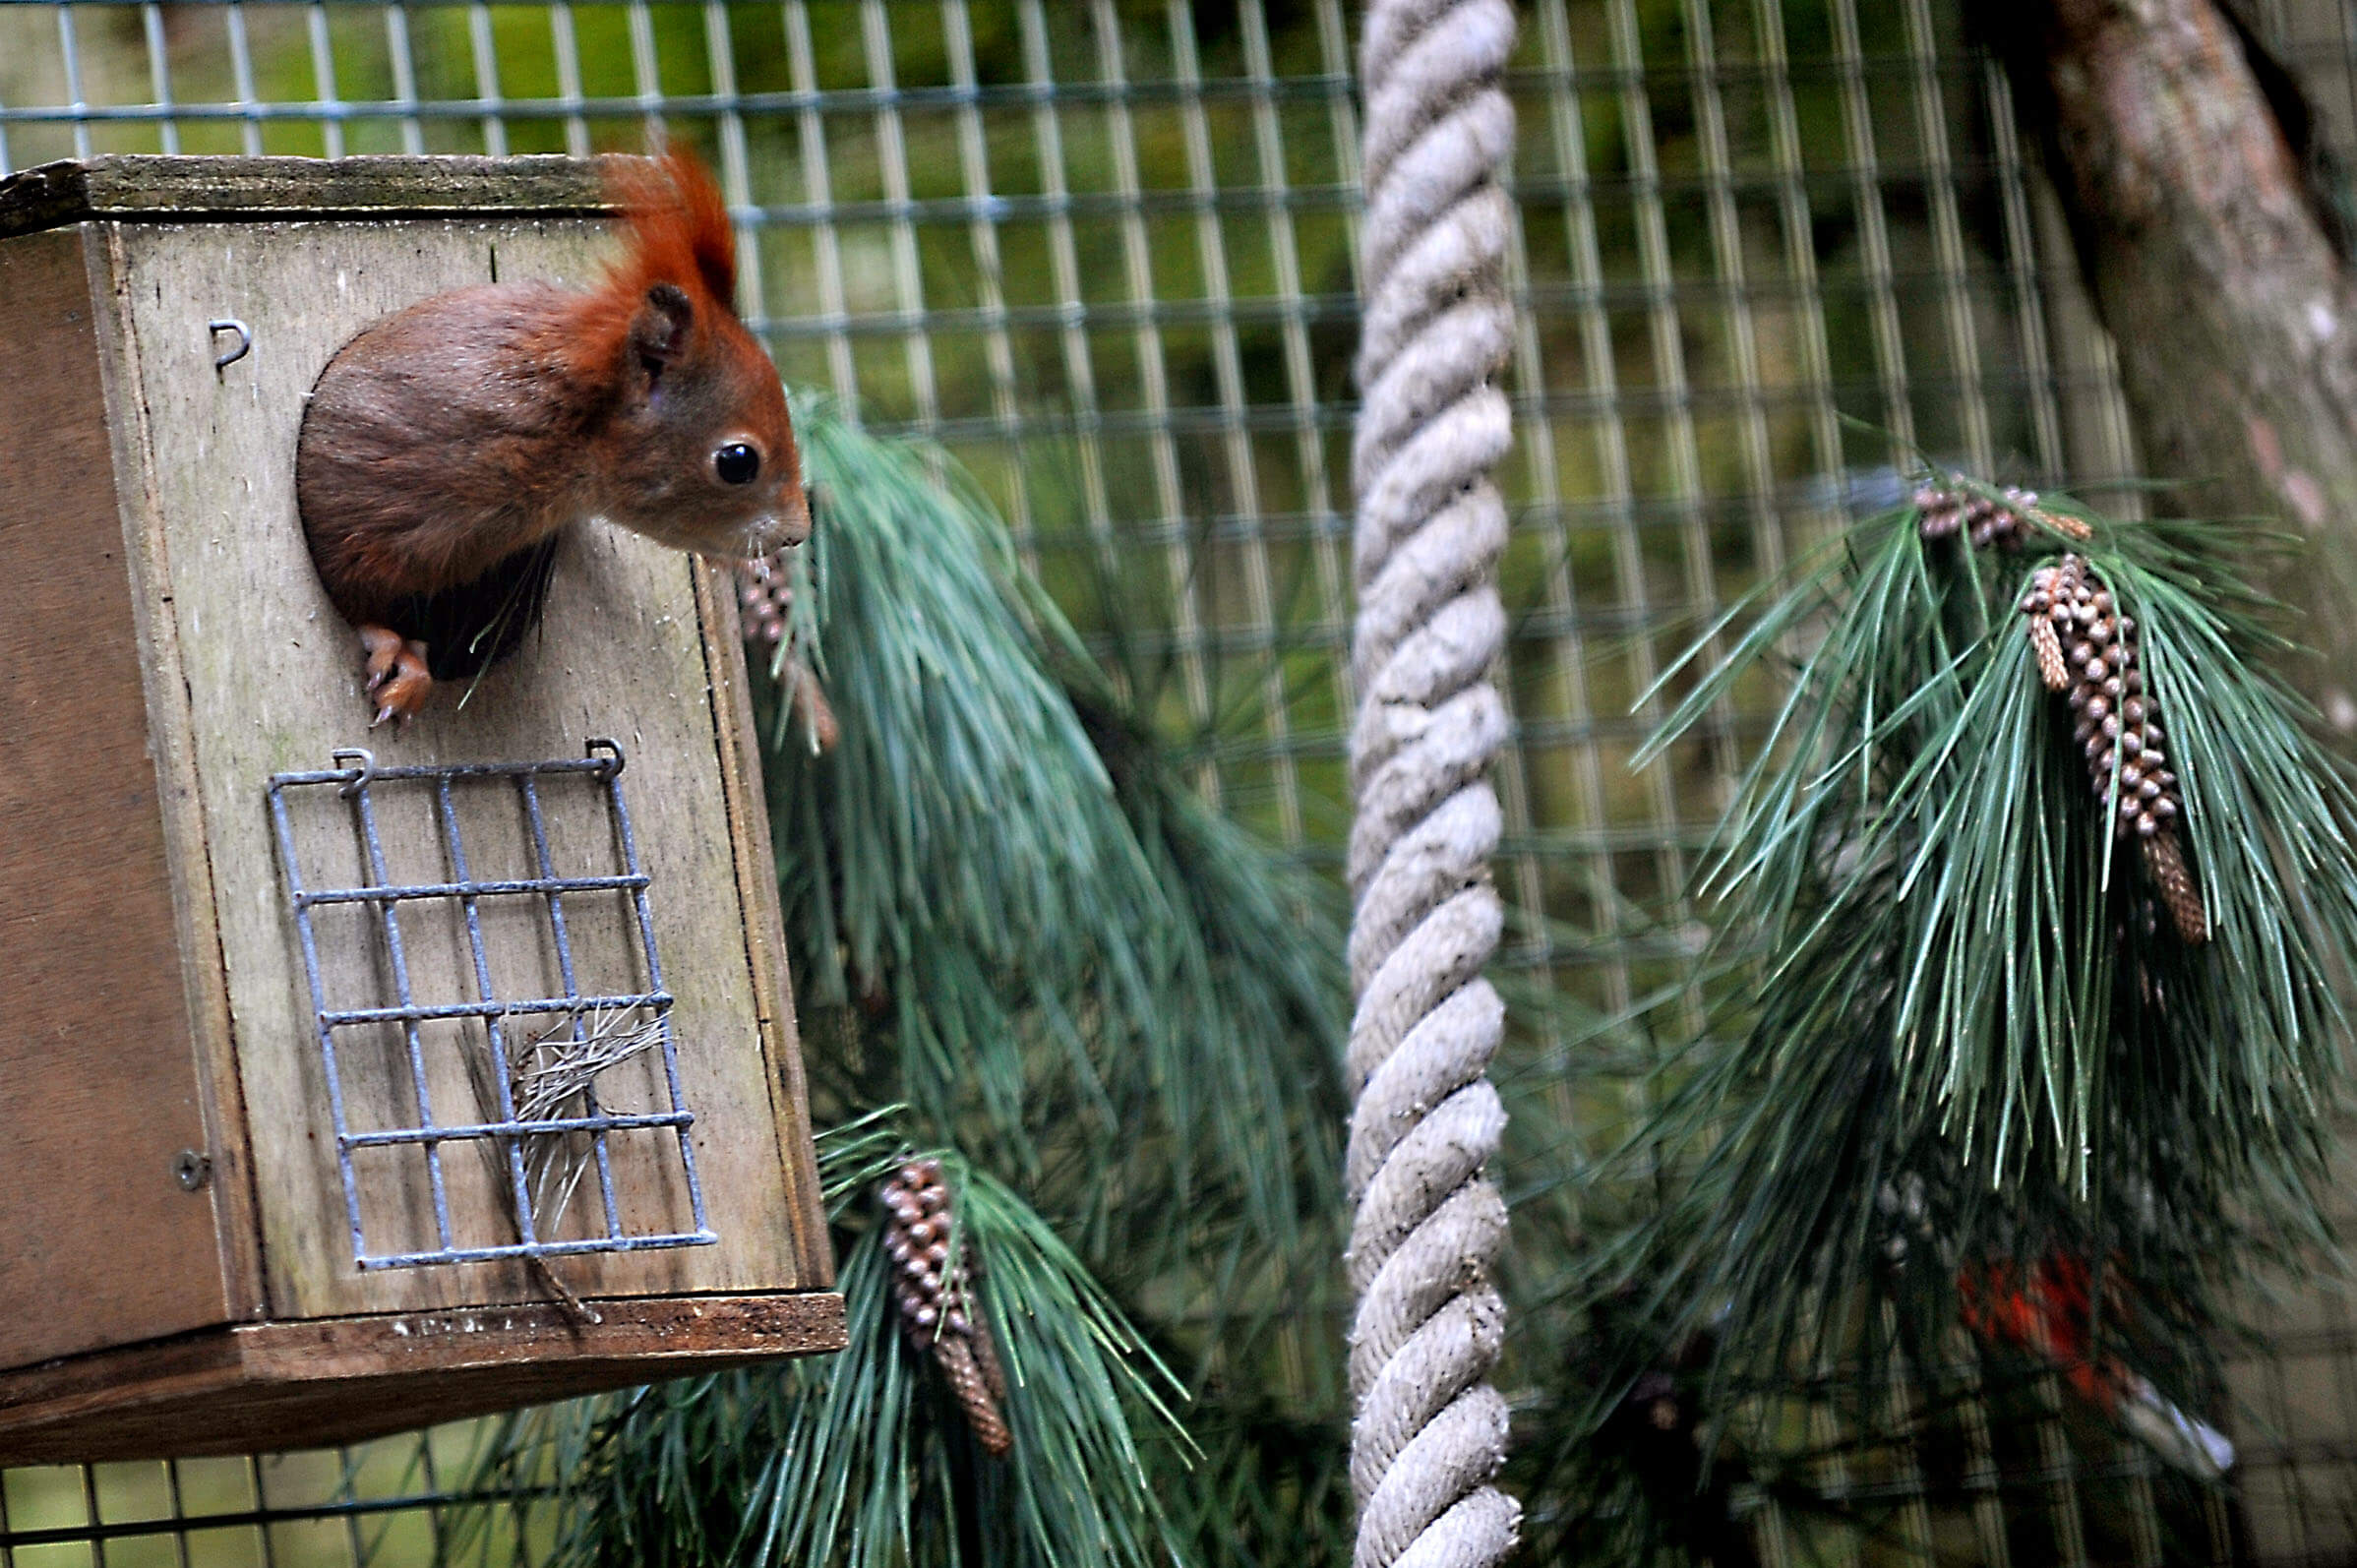 Red Squirrels in Cornwall - Trewithen Gardens